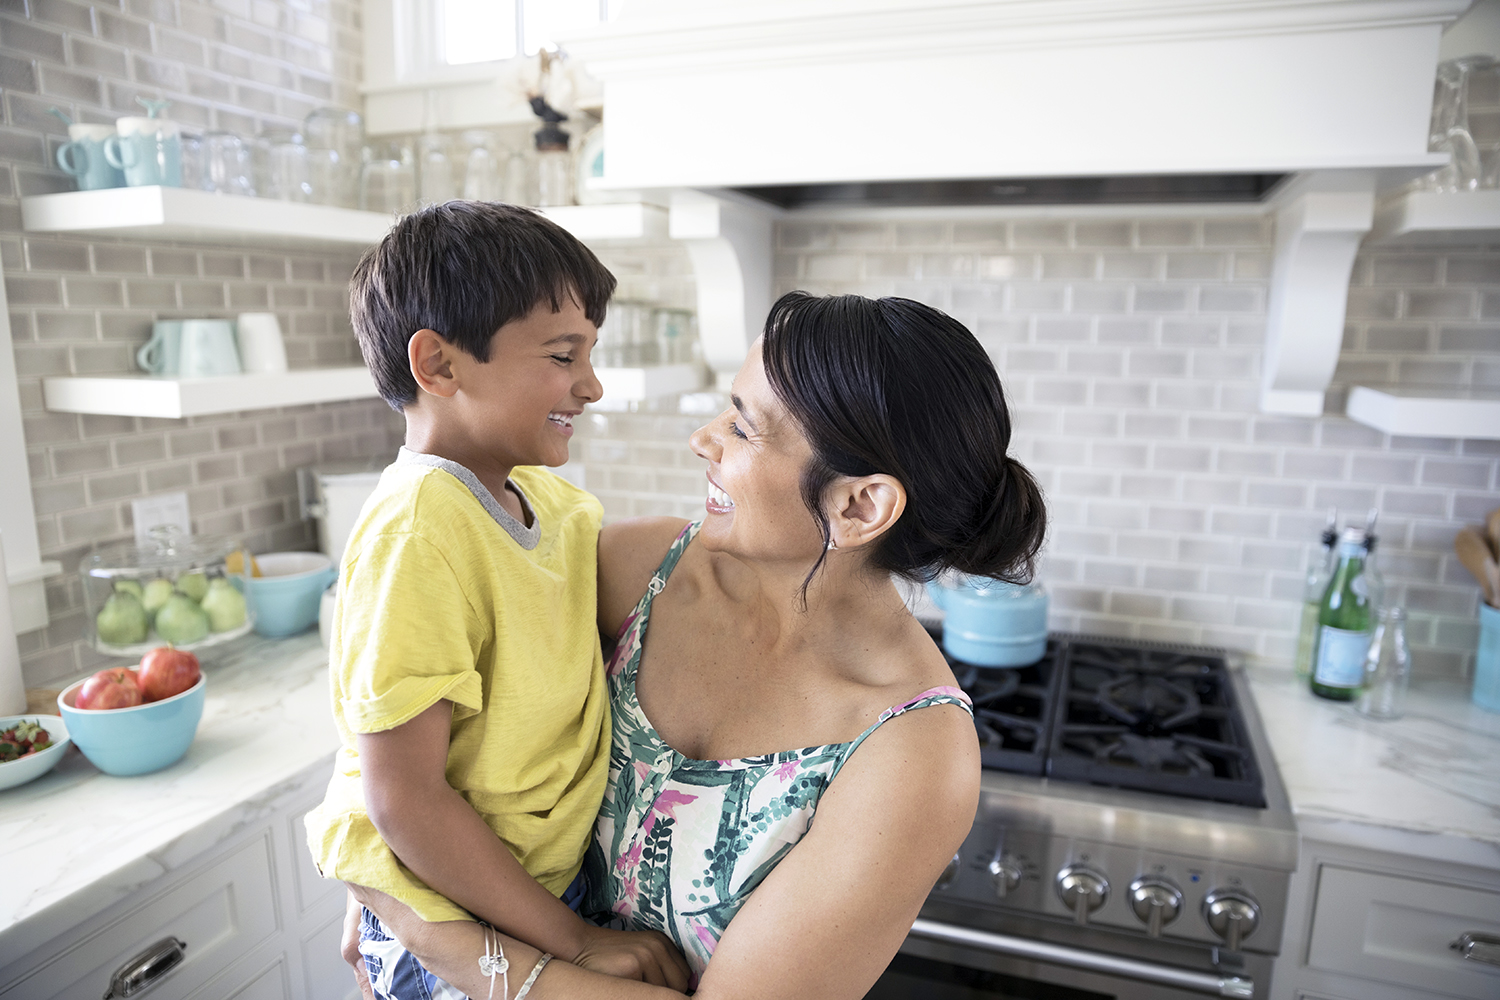 Smiling mother holding son in kitchen